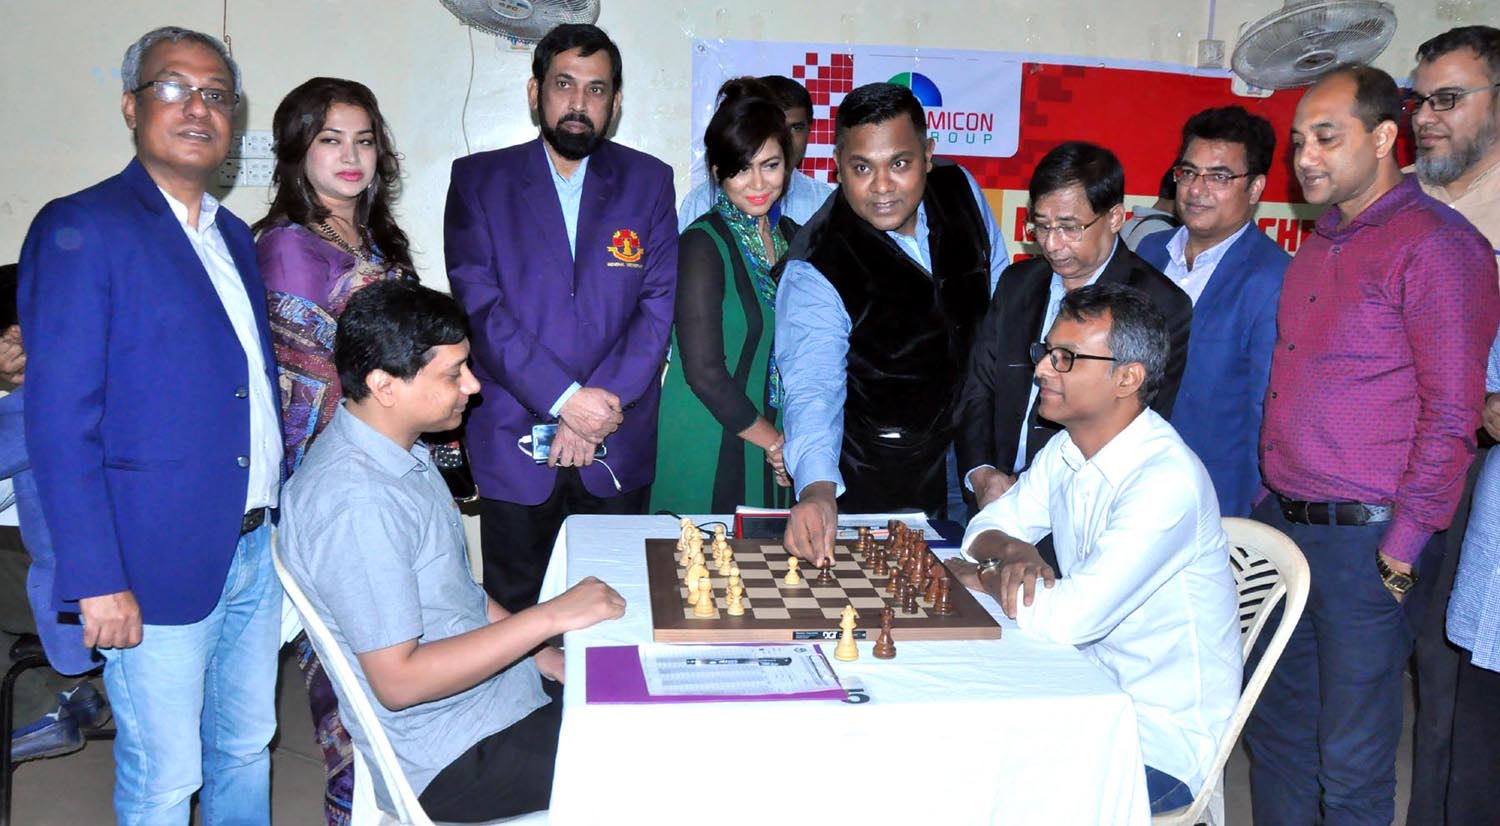 A scene from the opening ceremony of the Omicon Group 43rd National A Chess Championship held at Bangladesh Chess Federation hall-room on Tuesday.